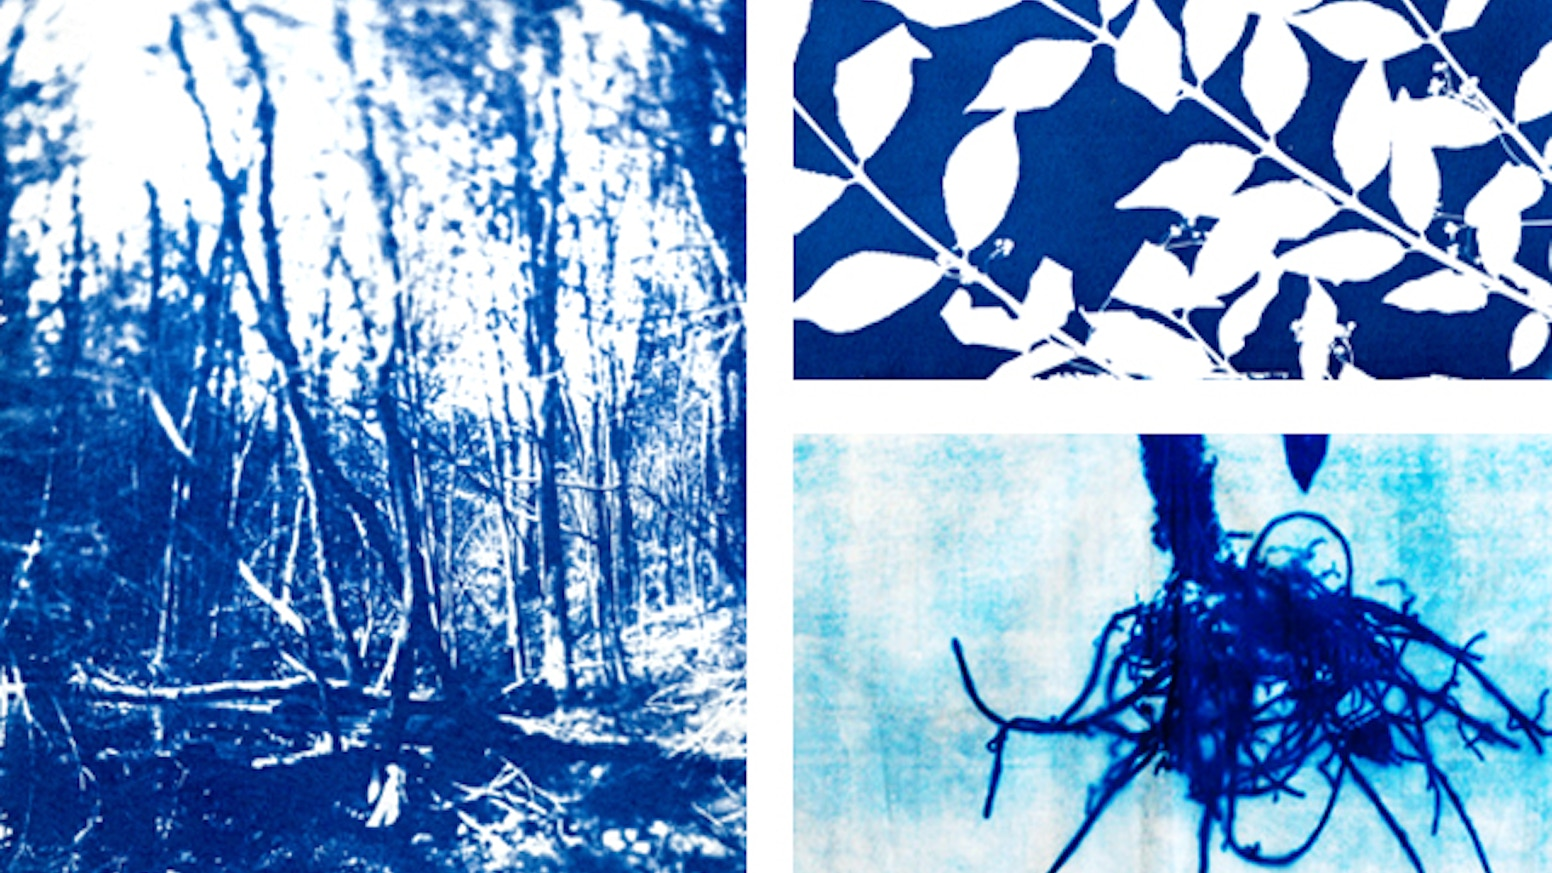 I will create a new series of large format cyanotype photographic images while in residence at Artscape Gibraltar Point,Toronto.